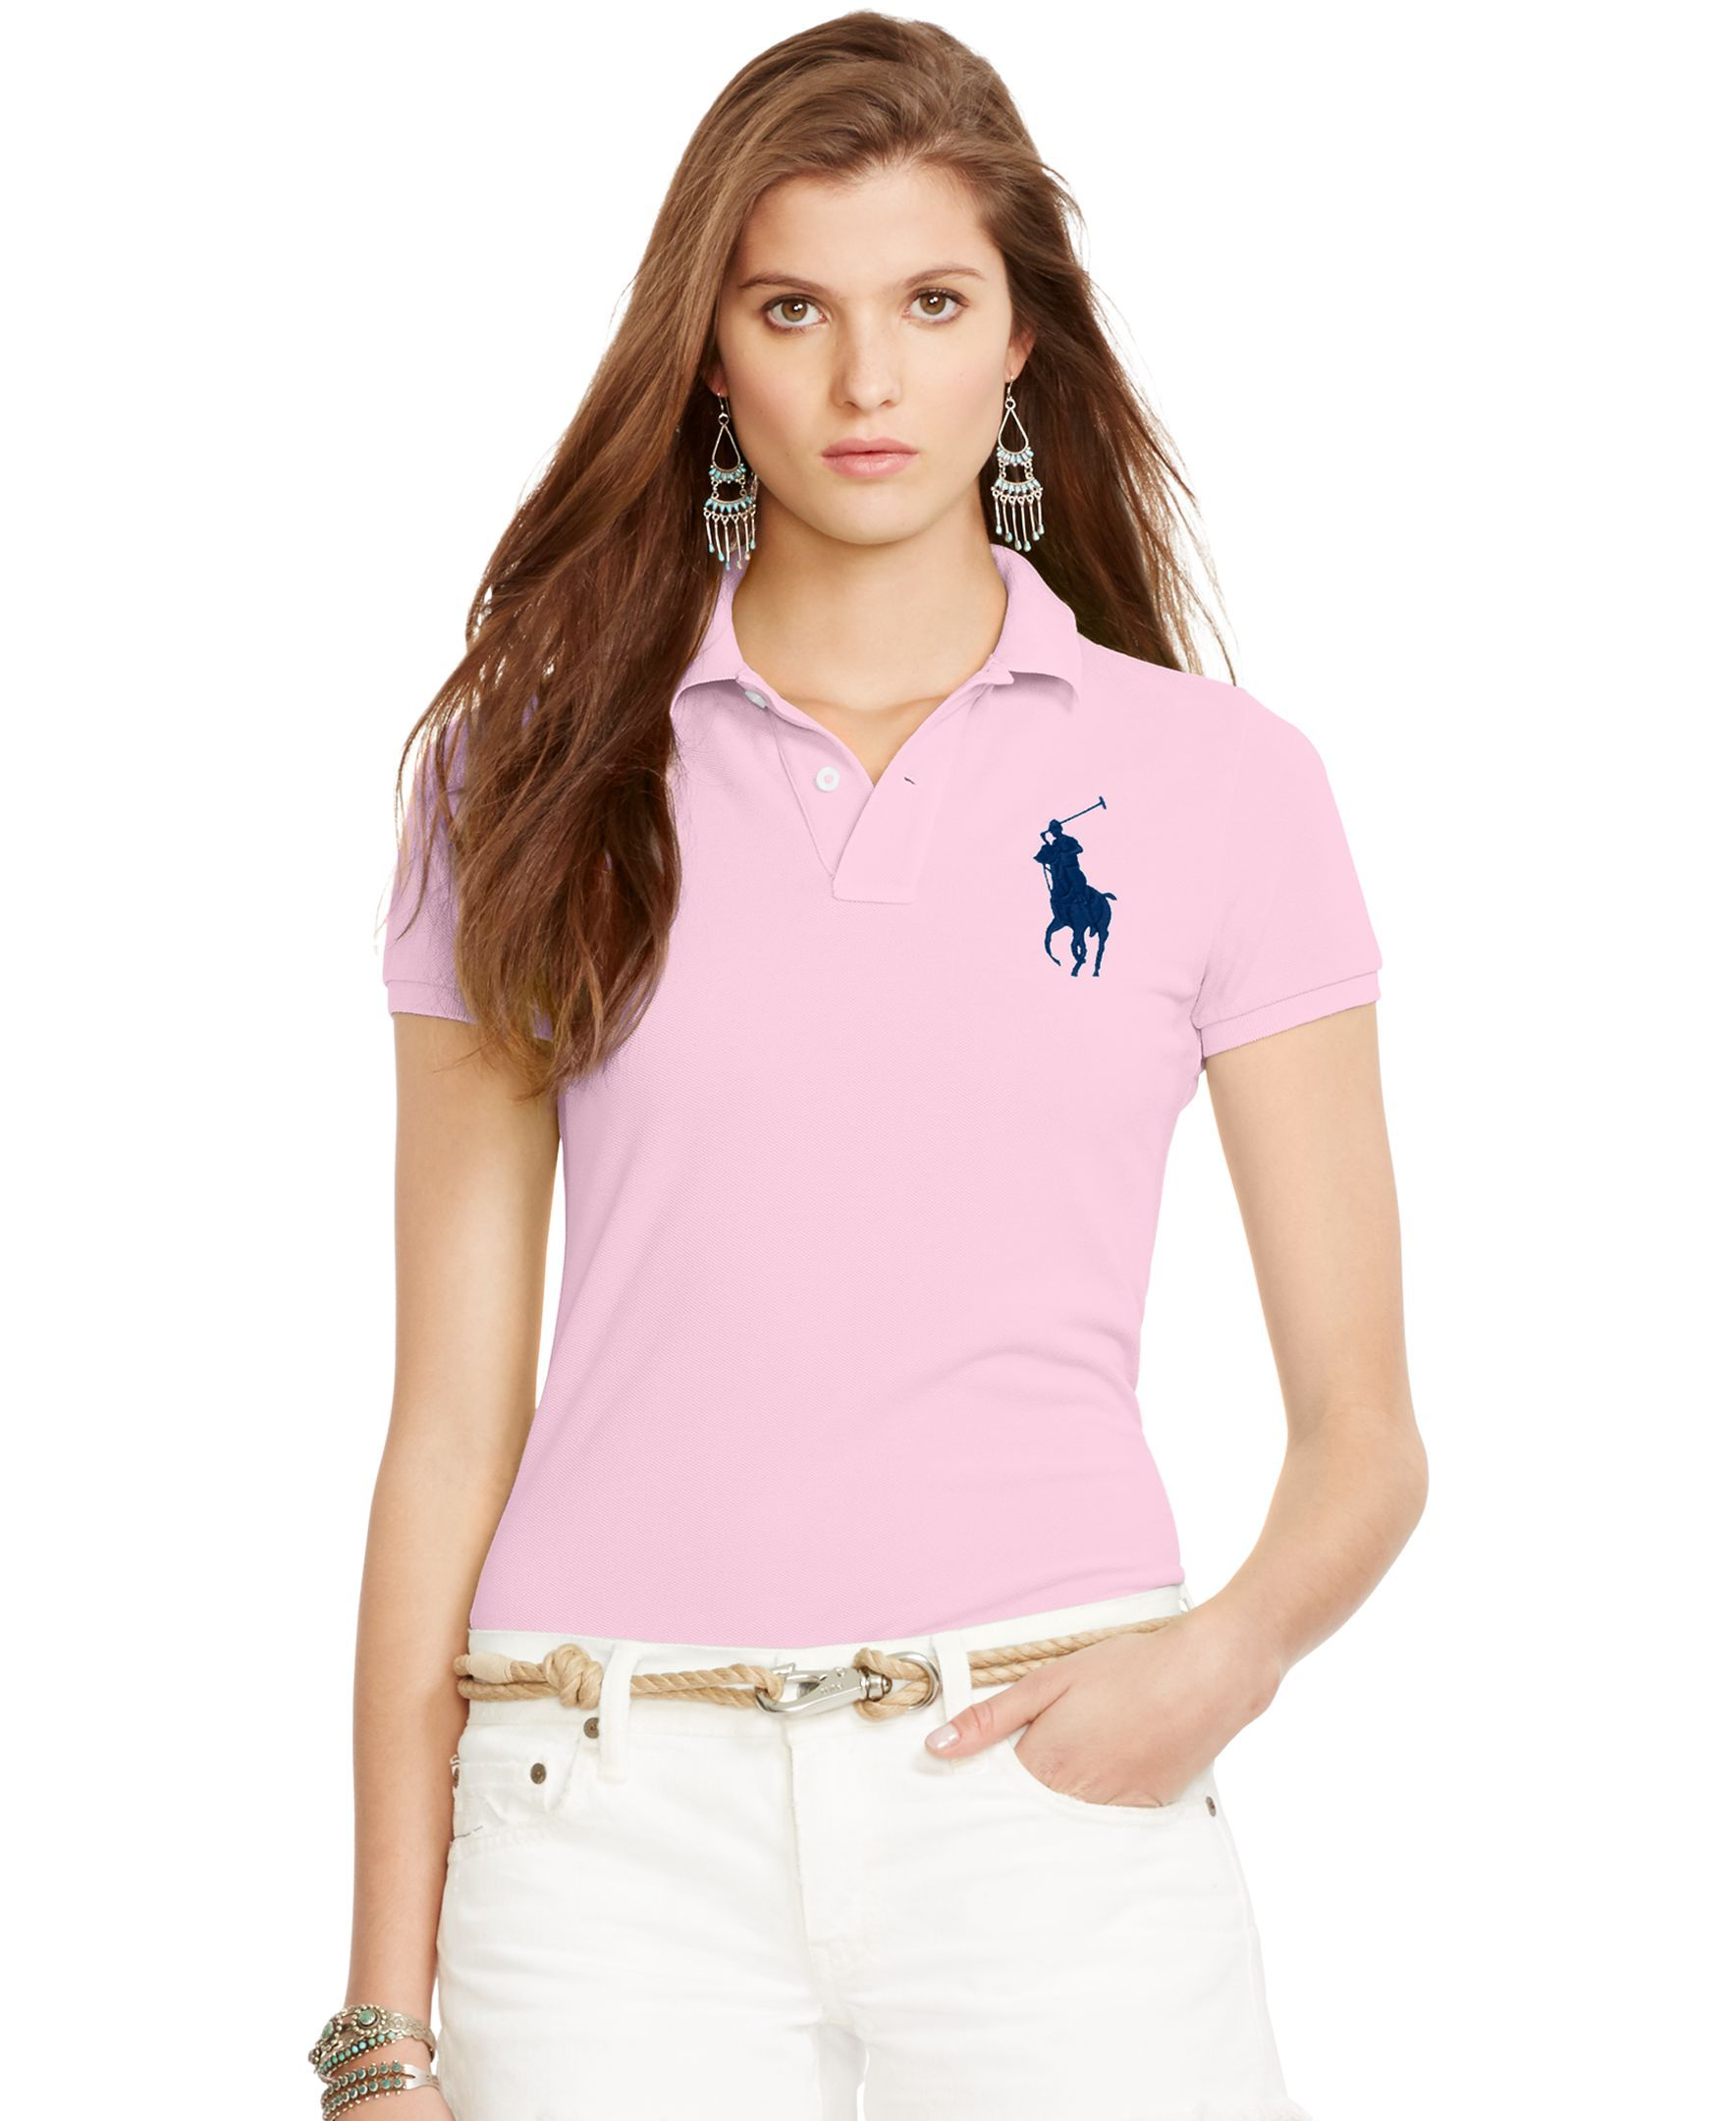 370cbe7dcea5 Polo Ralph Lauren Skinny-Fit Big Pony Polo Shirt   Clothes   Ralph ...